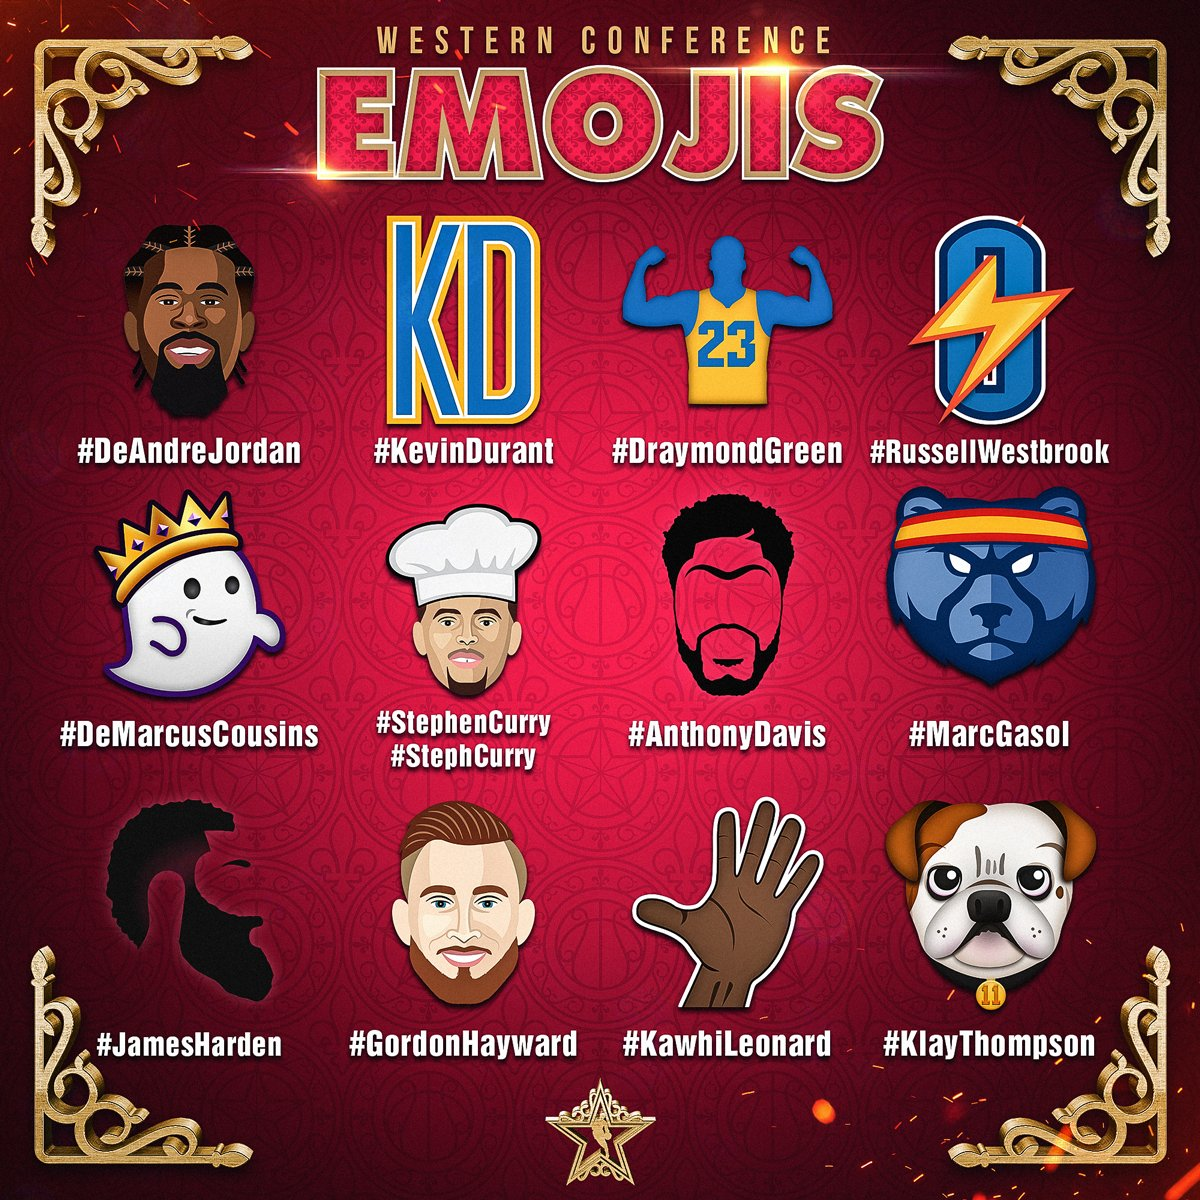 Our #NBAAllStar Emojis are LIVE for the Weekend! https://t.co/fwJfdLbwre